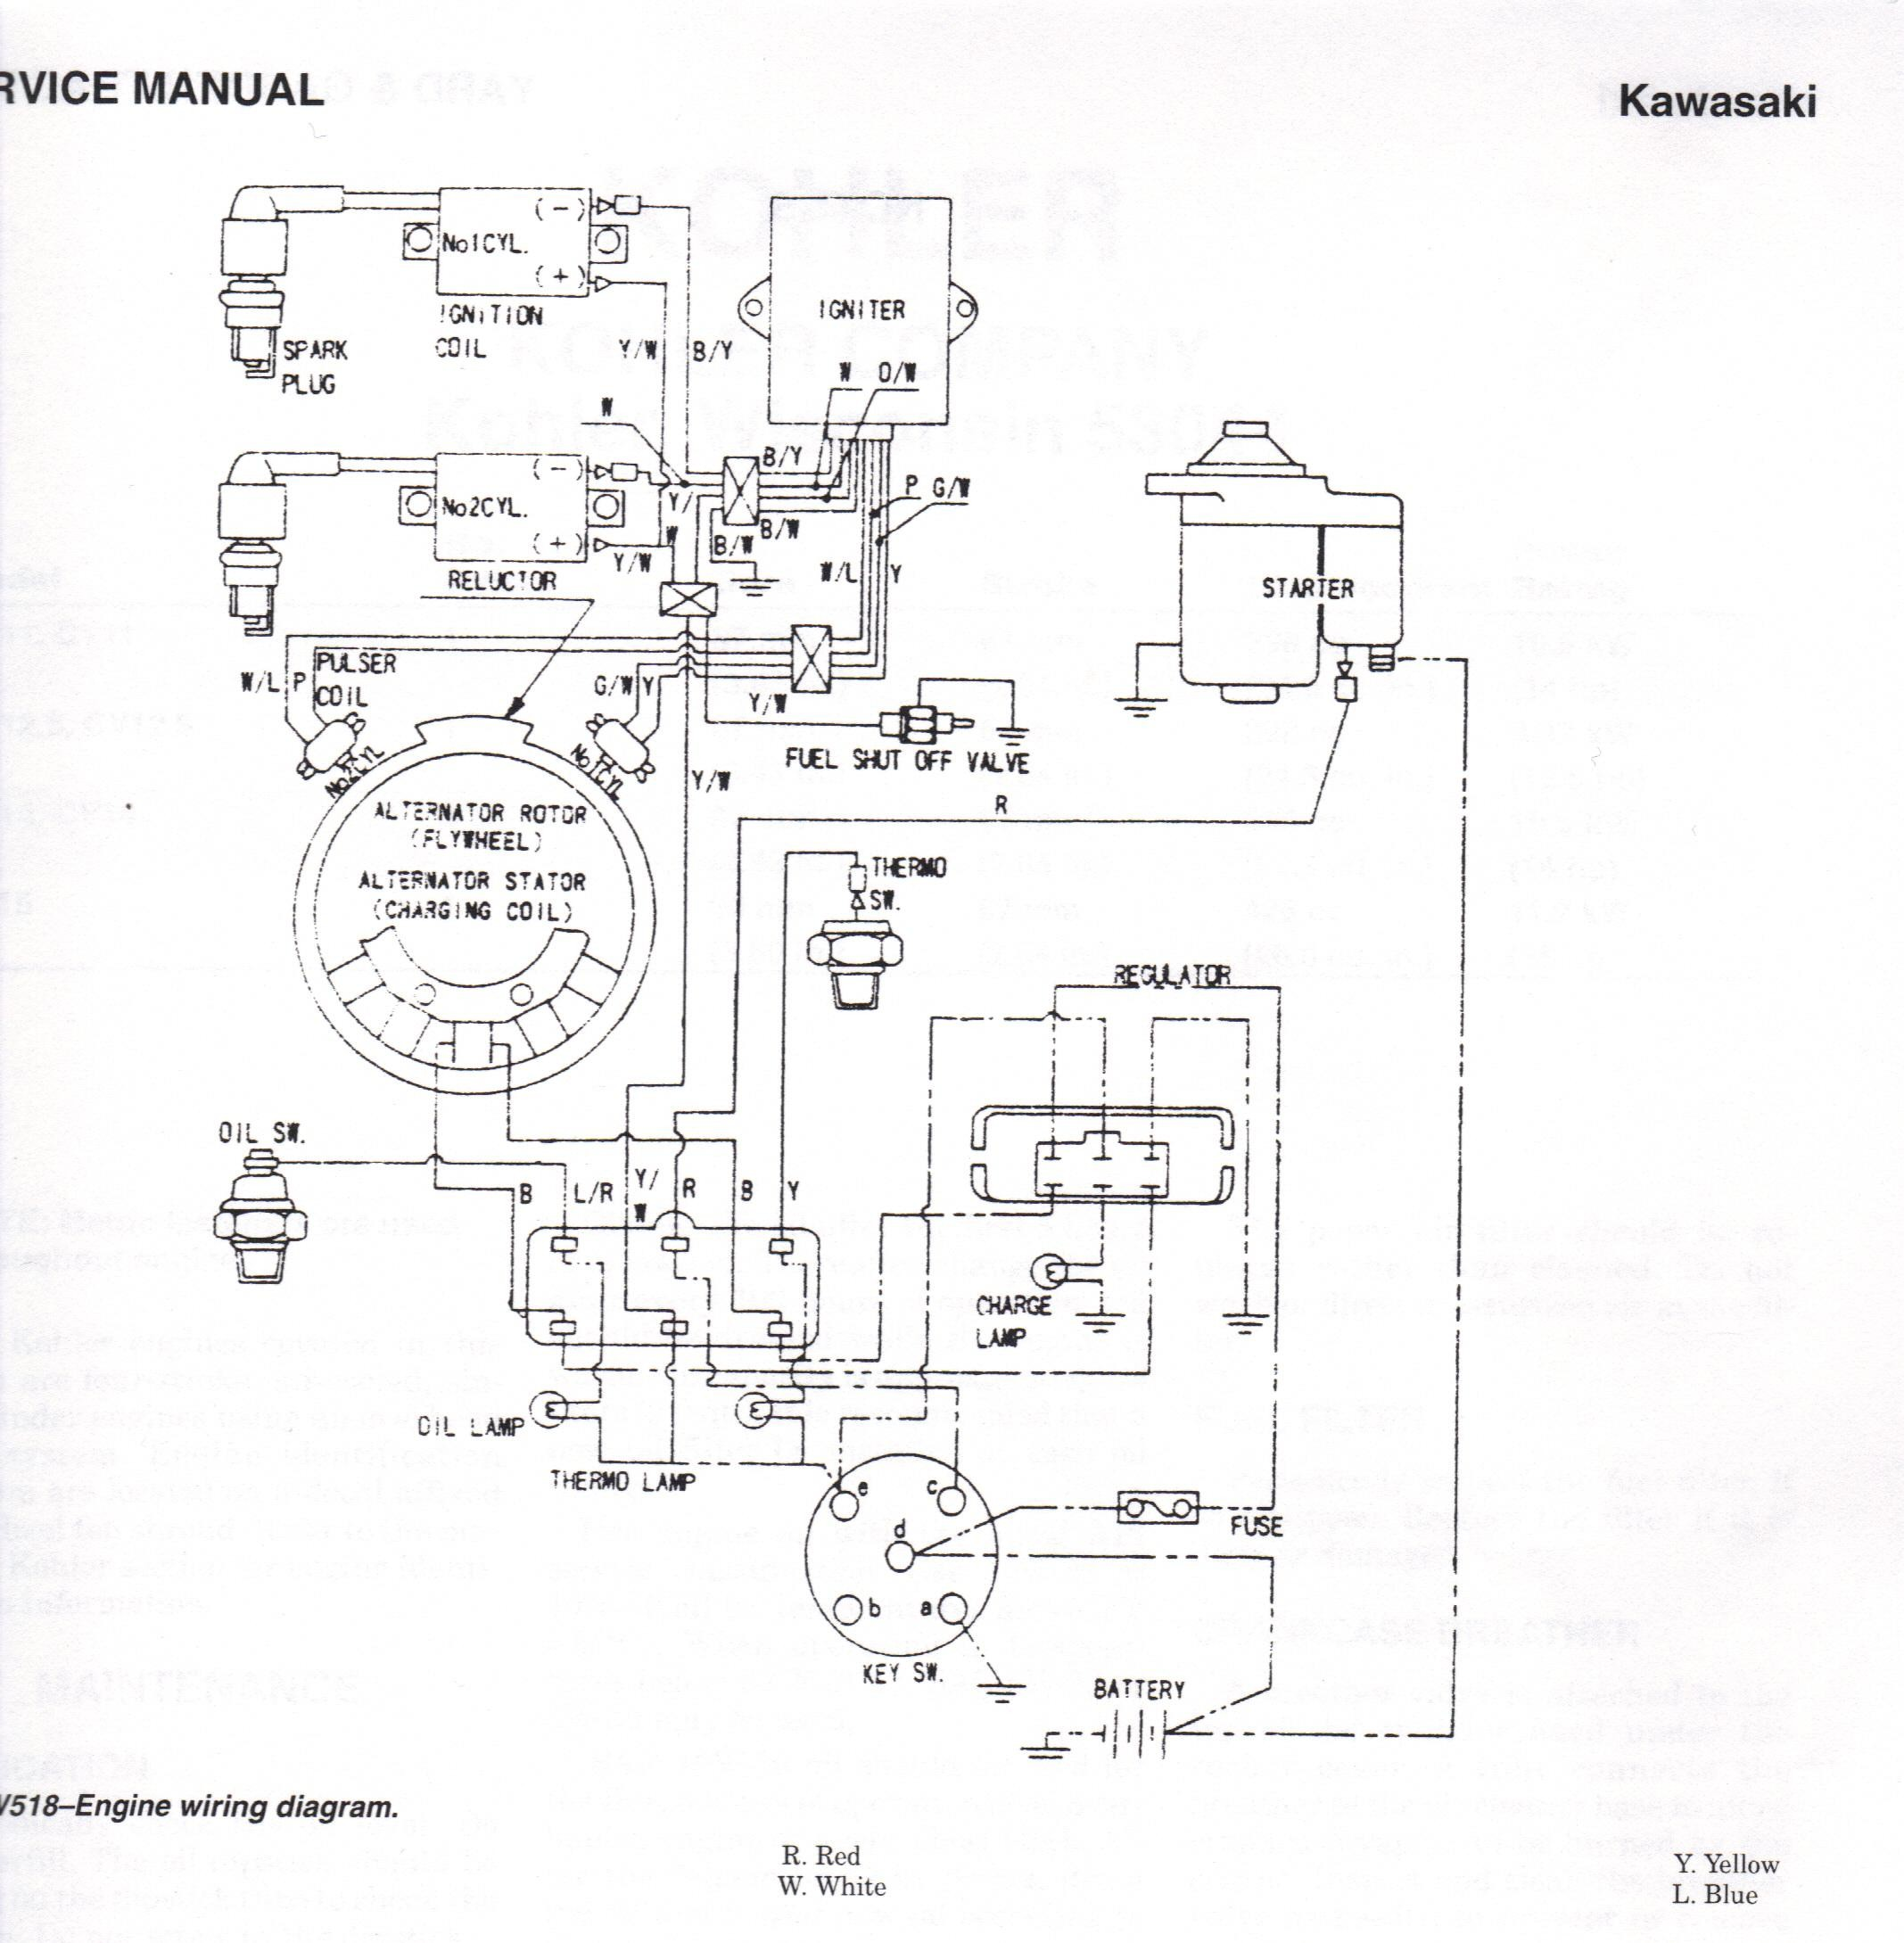 John Deere Gator Hpx Wiring Diagram Auto Electrical Gibson P100 Related With